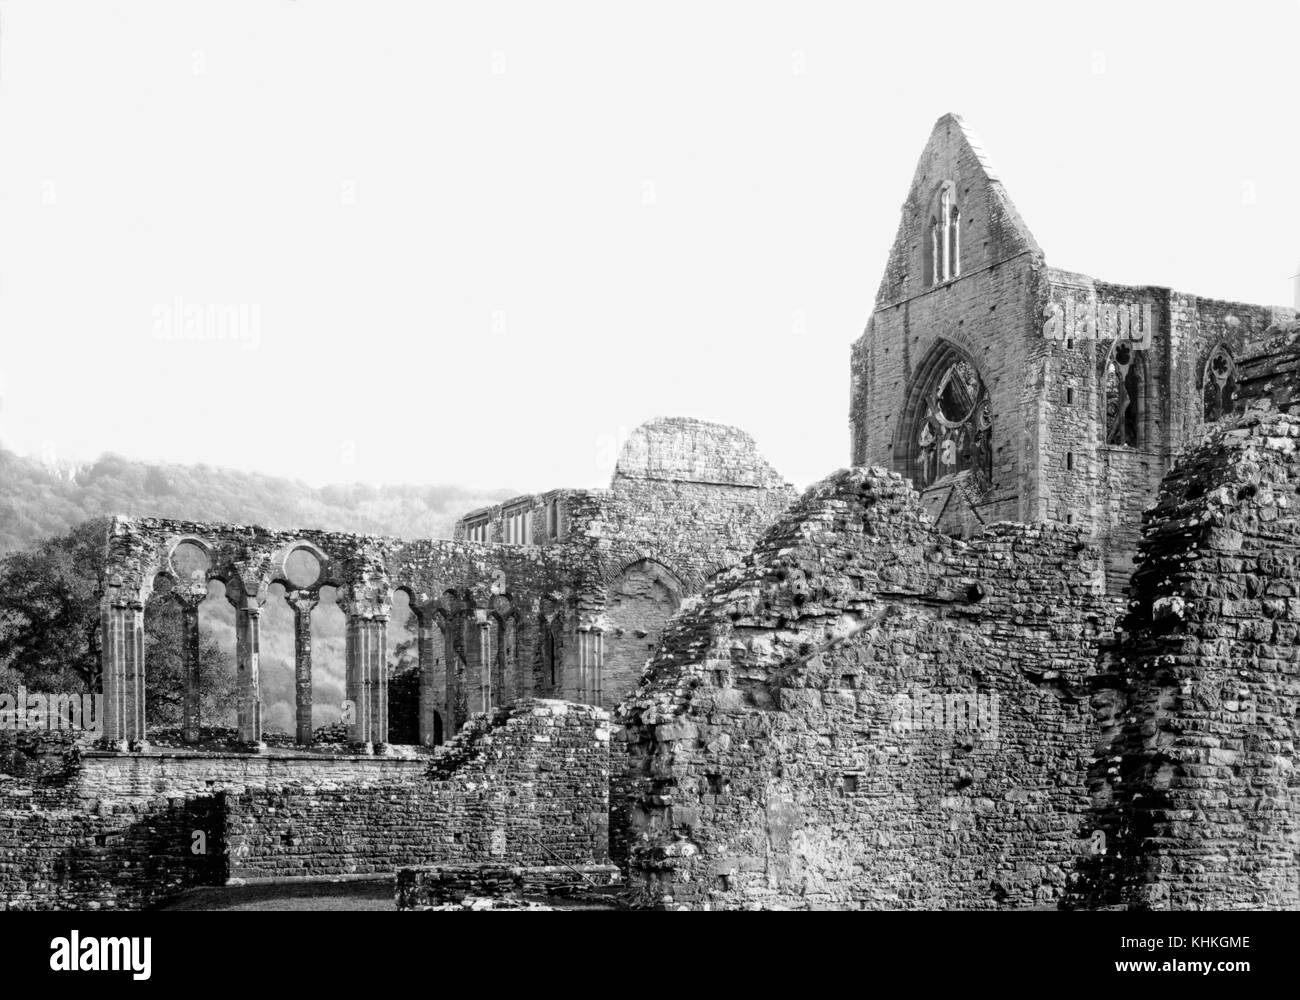 Tintern Abbey, 12th century Cistercian abbey on the banks of the River Wye at Tintern, Monmouthshire, Wales UK  - Stock Image